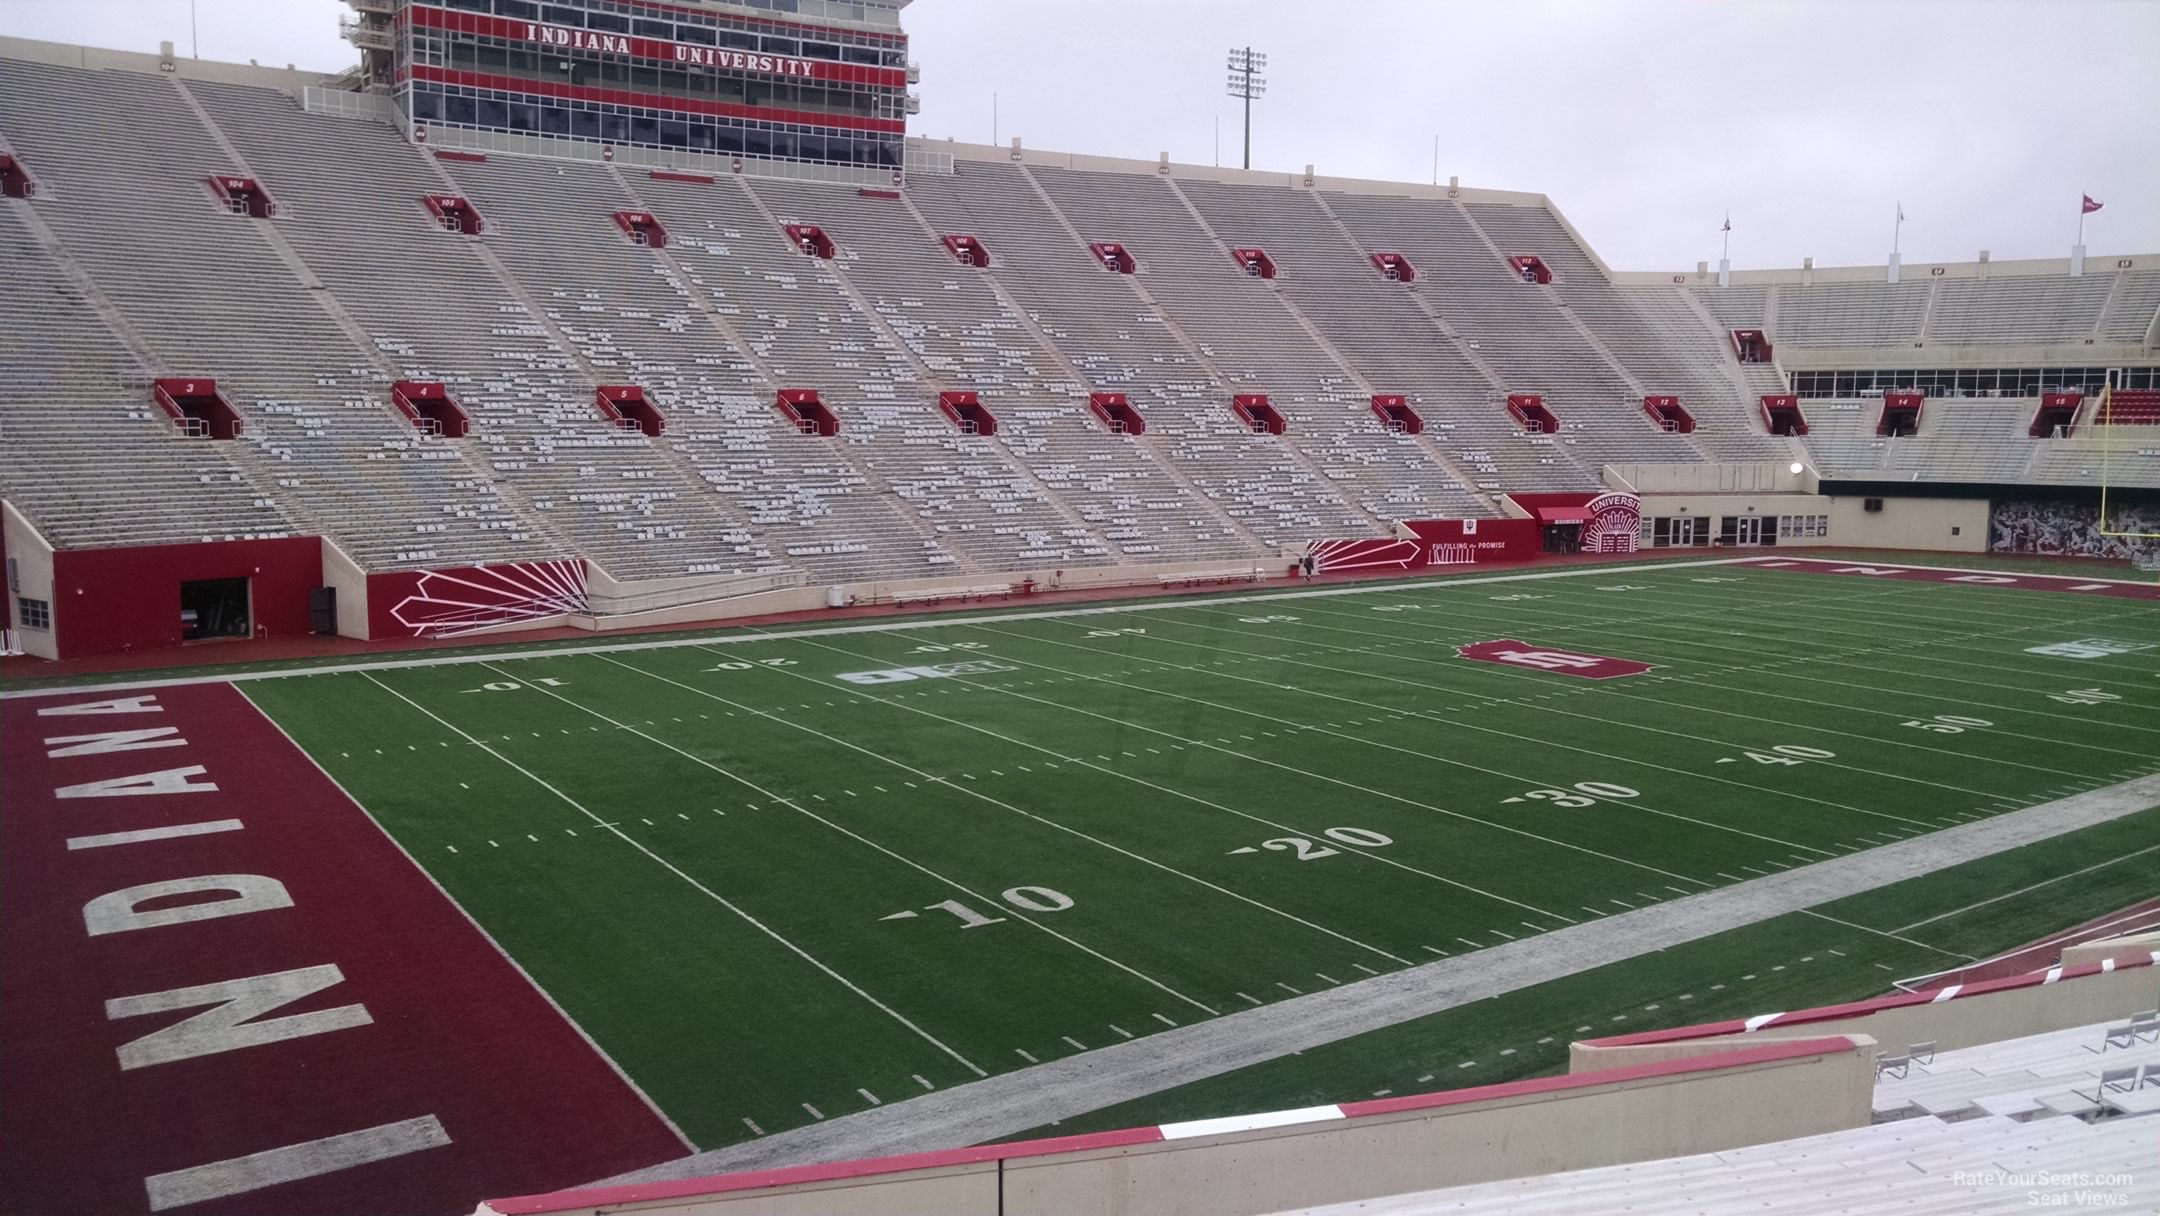 Seat View for Memorial Stadium - IN Section 31, Row 30